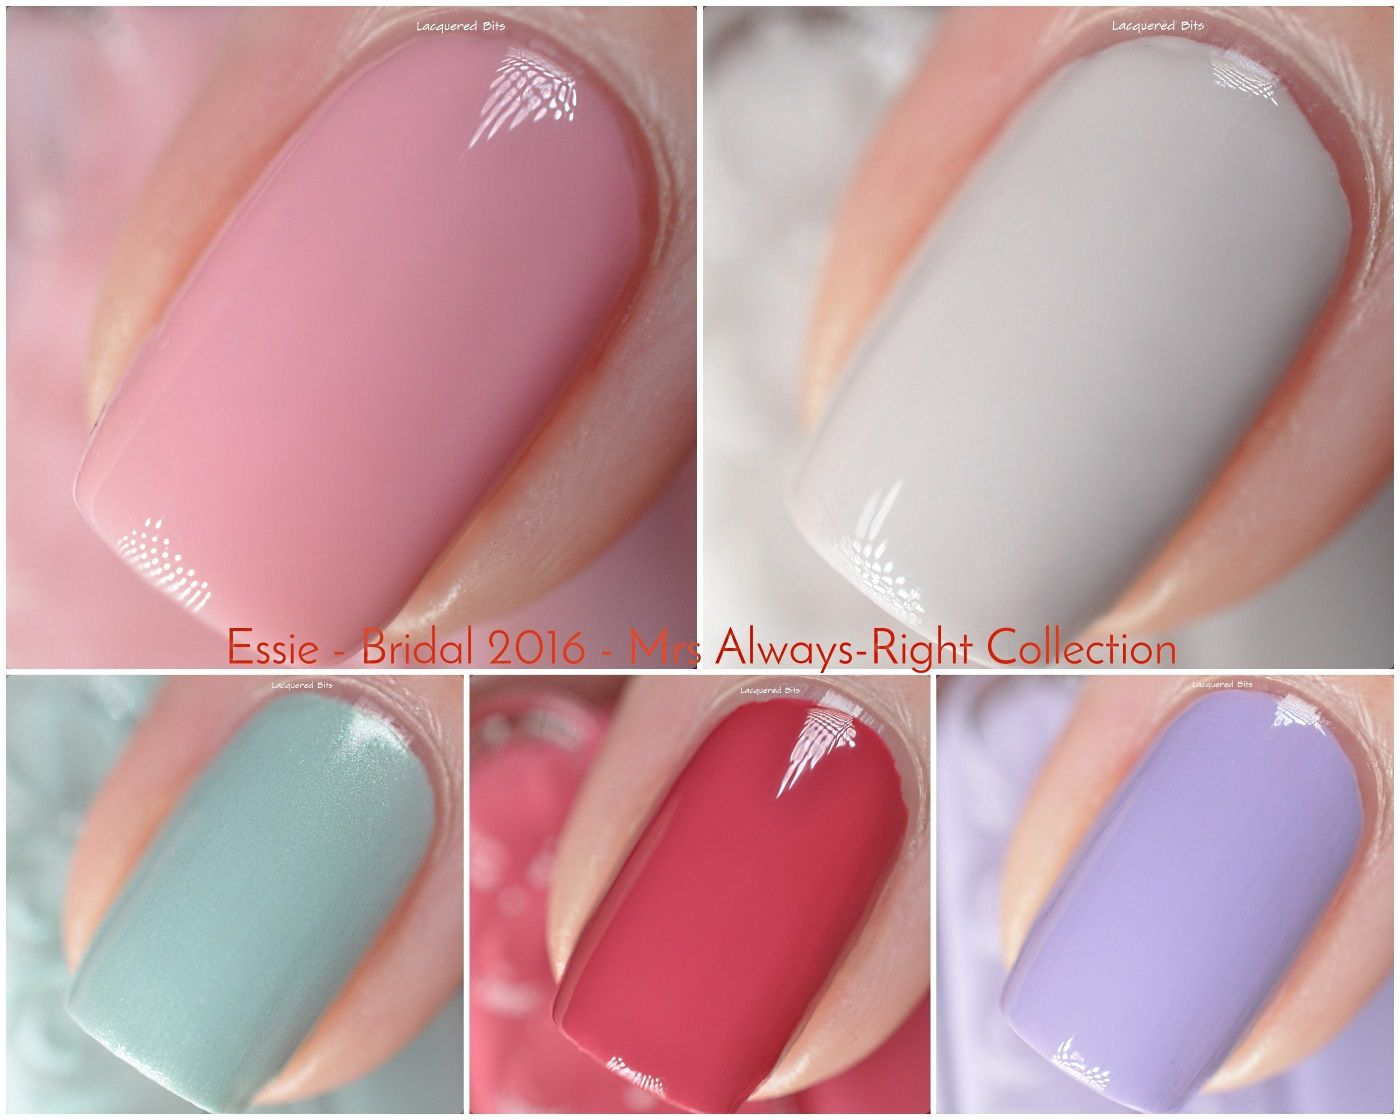 essie bridal 2016 mrs always right collection swatches review